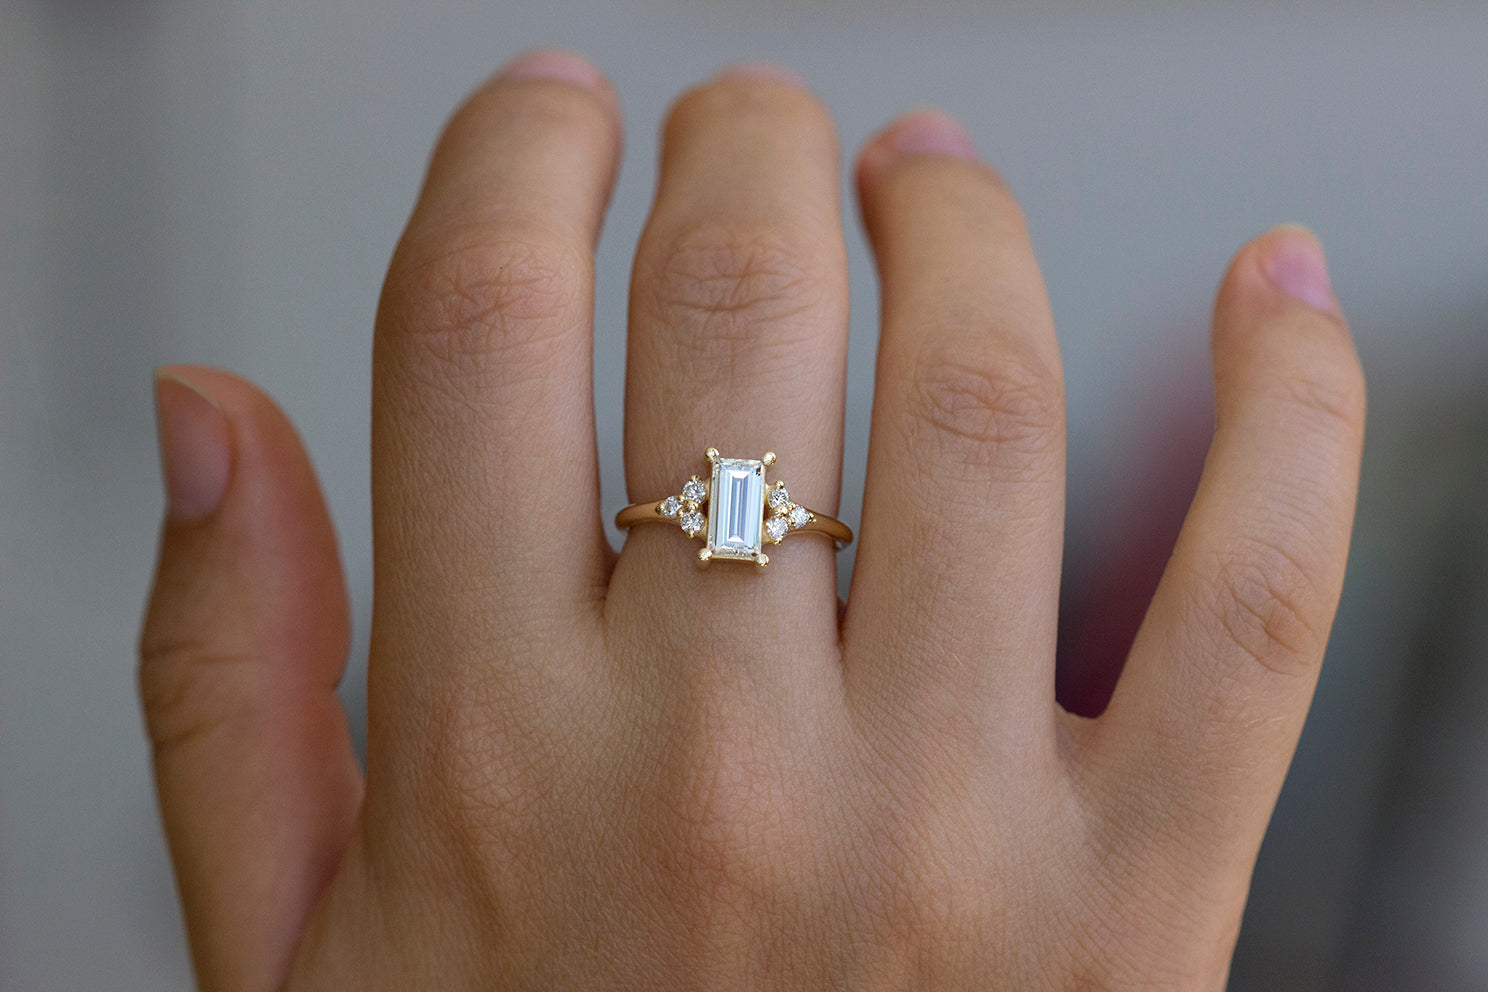 One Carat Baguette Diamond Engagement Ring On Hand